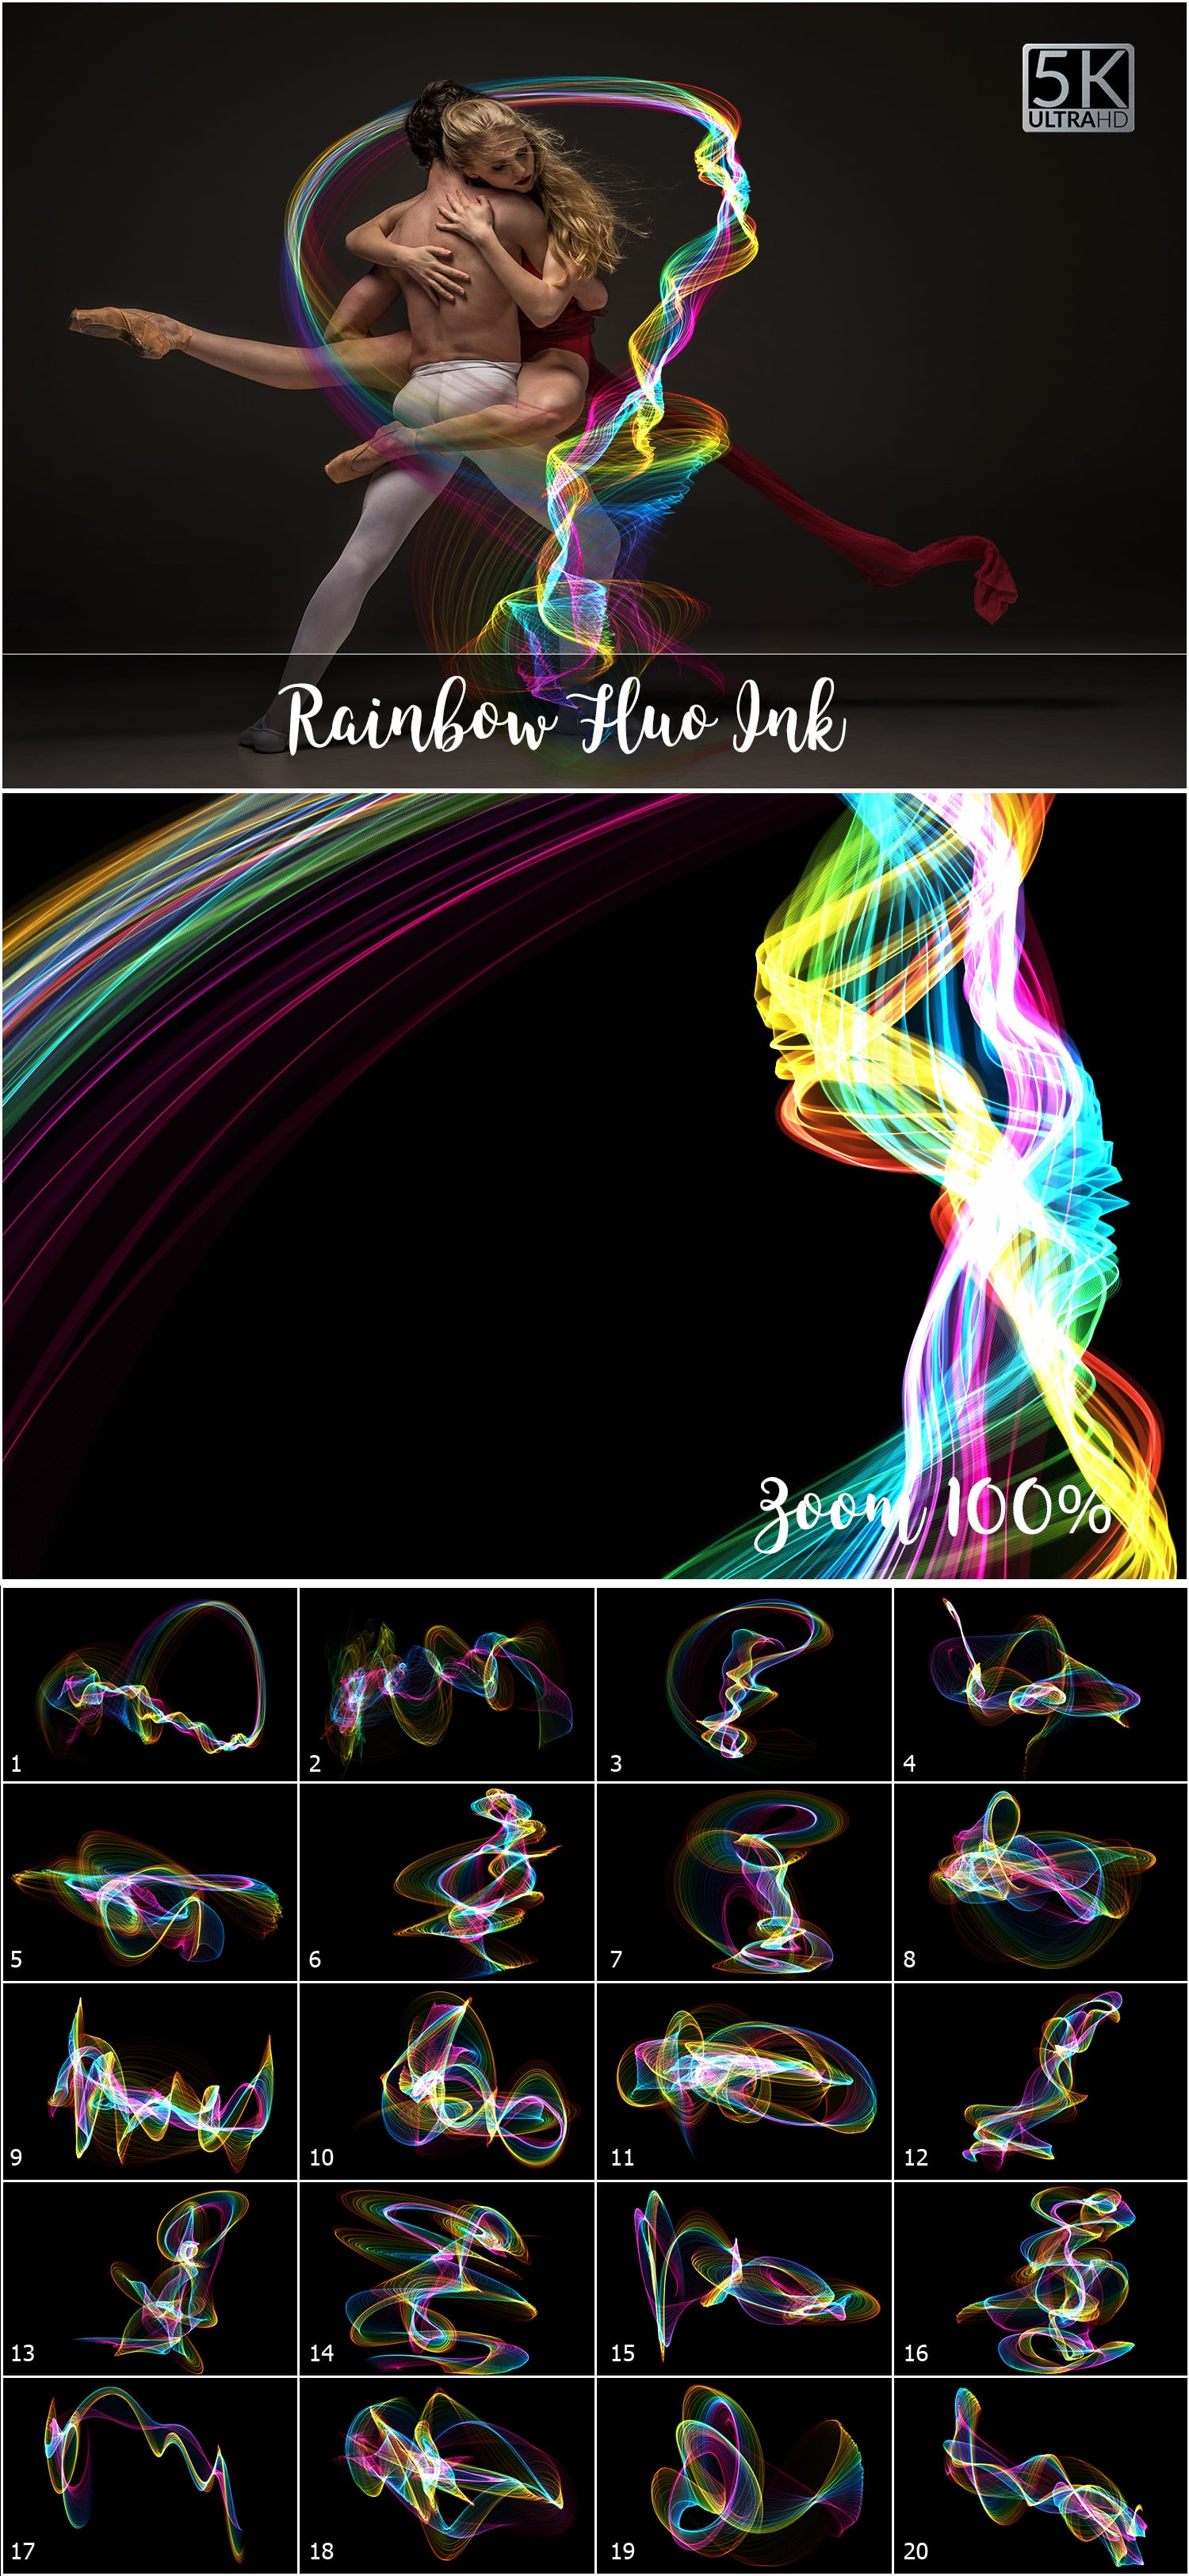 1053 Spectacular Overlays png - Only $18! - Rainbow FLuo Ink